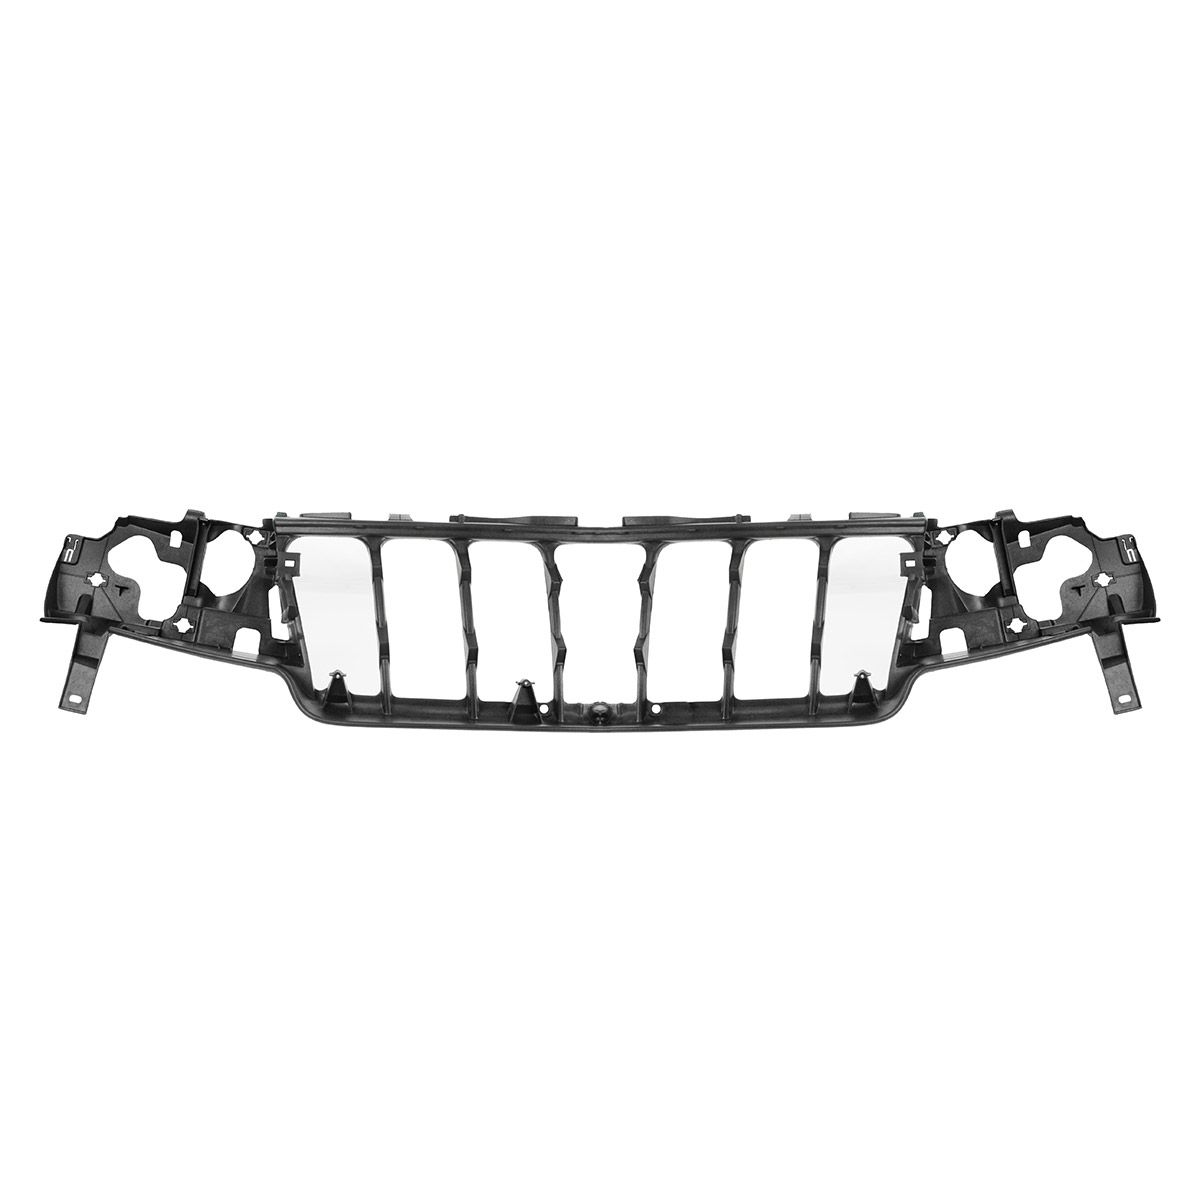 Headlight Head Light Mounting Panel For 99 03 Jeep Grand